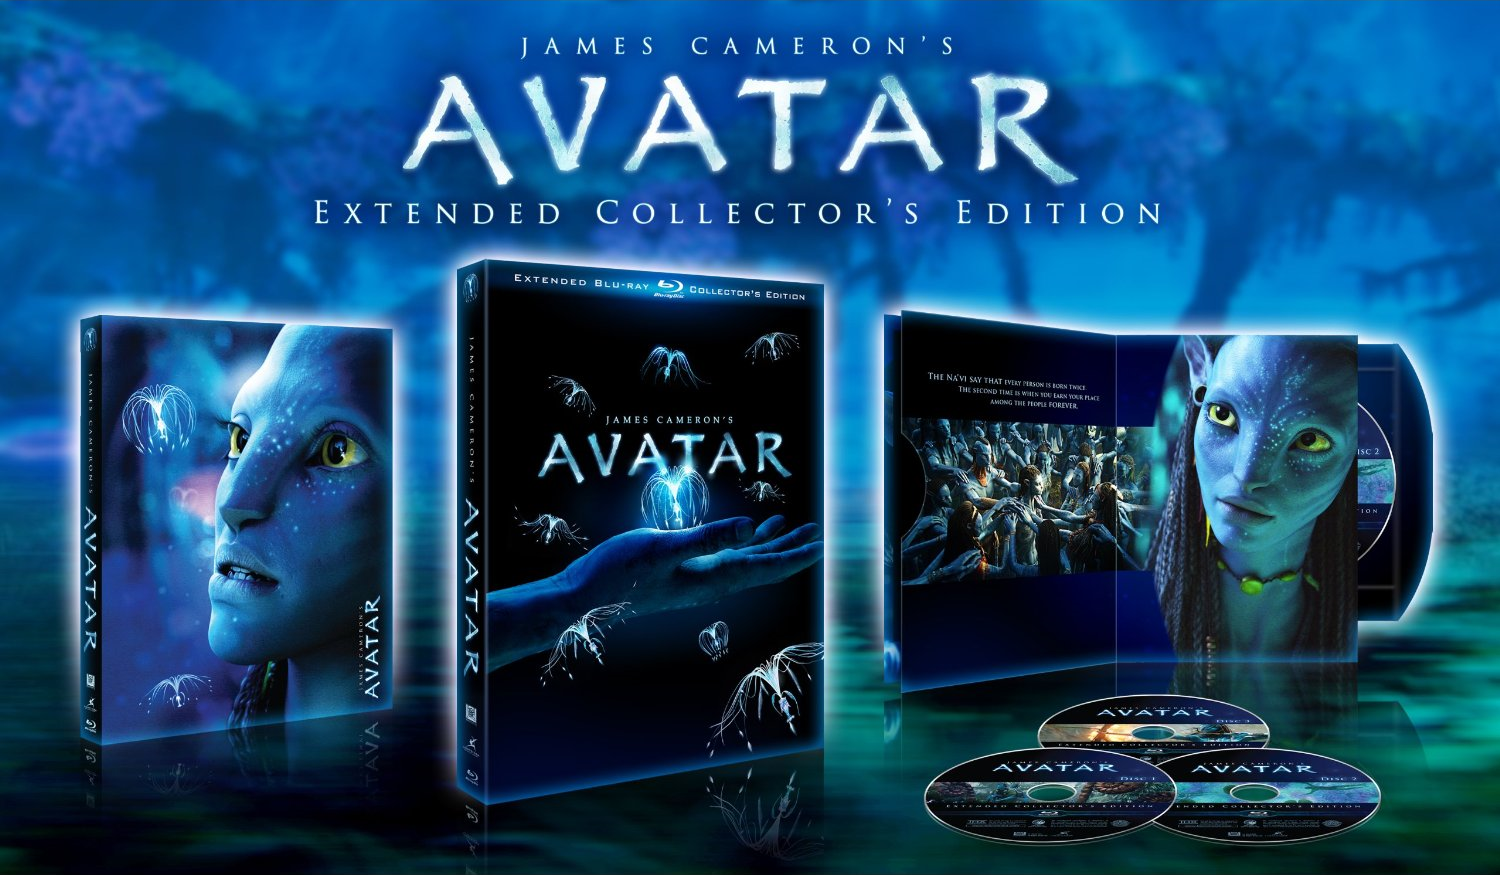 Avatar: Extended Collector's Edition | Avatar Wiki | FANDOM powered